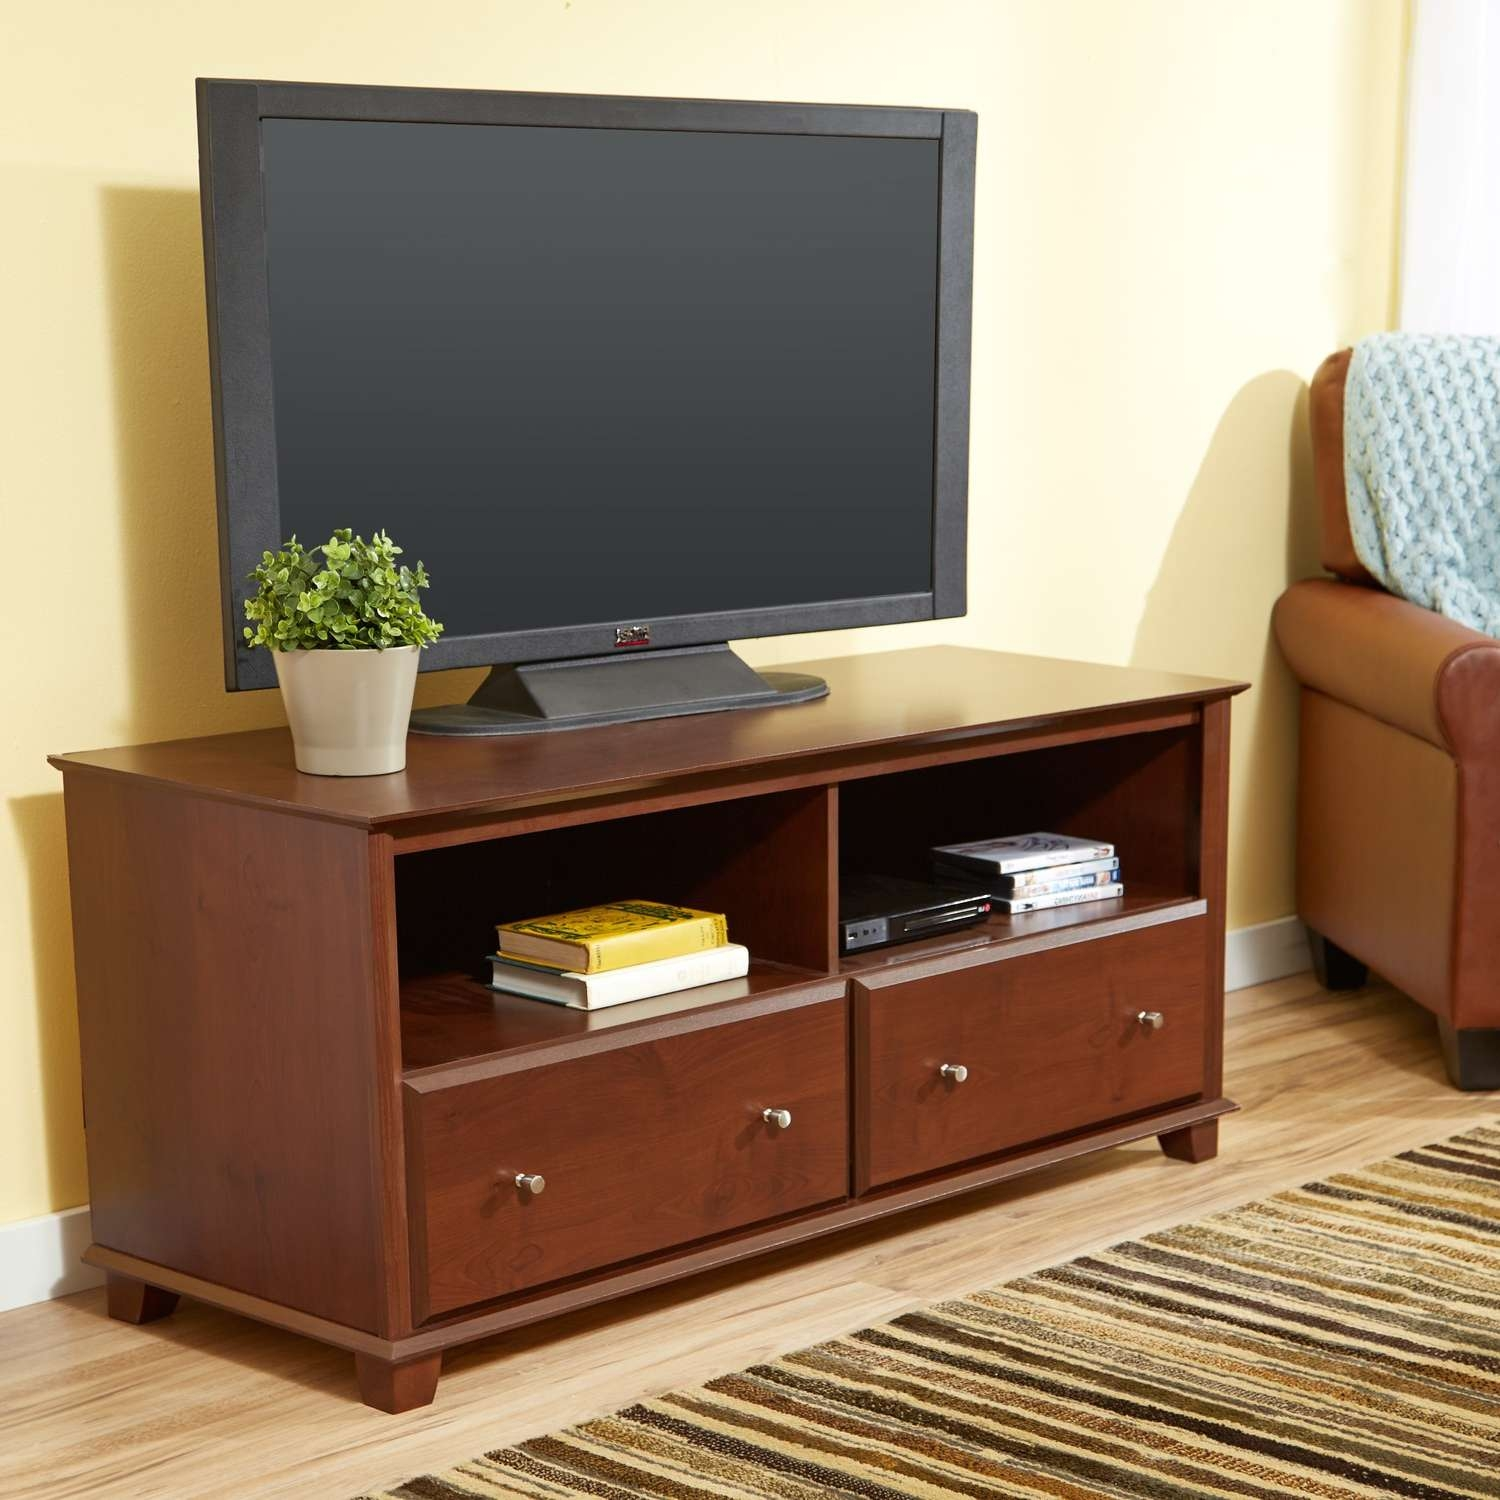 Furniture: Winsome Vivacious Mesmerizing Brown Cabinet Apothecary Intended For Light Brown Tv Stands (View 2 of 20)